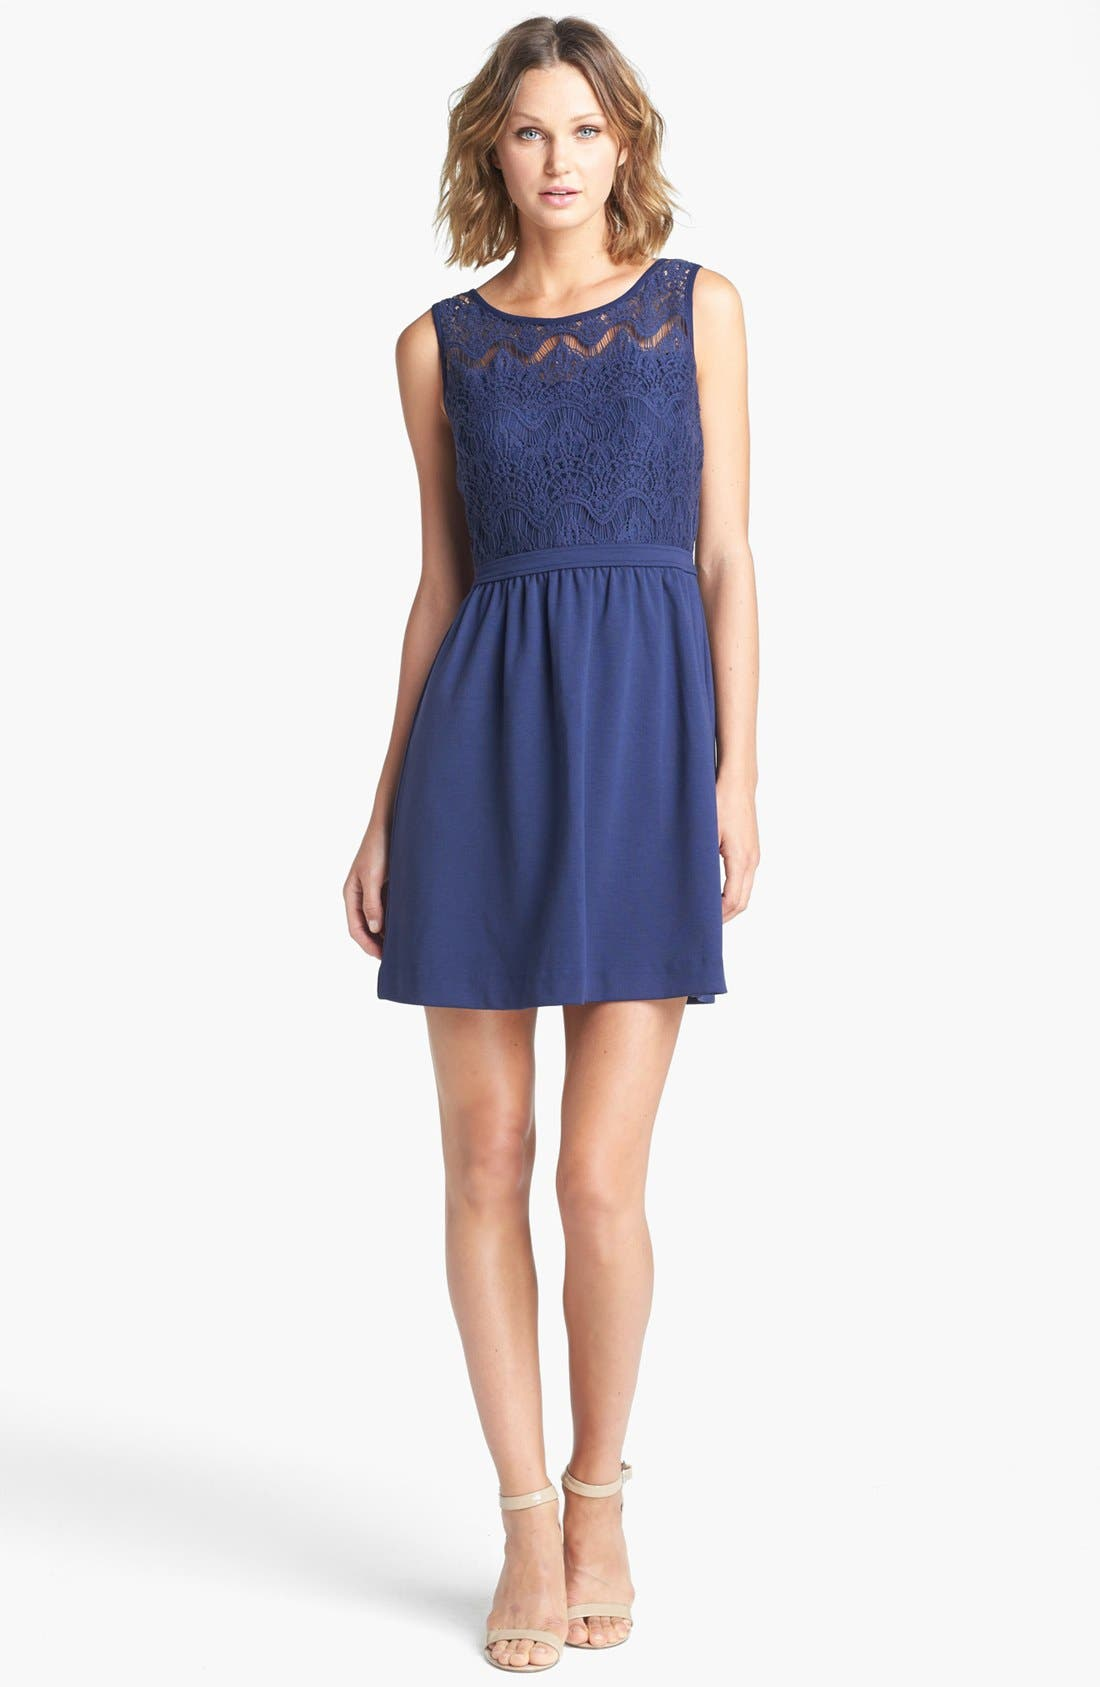 Alternate Image 1 Selected - Lilly Pulitzer® 'Rhea' Mixed Media Fit & Flare Dress